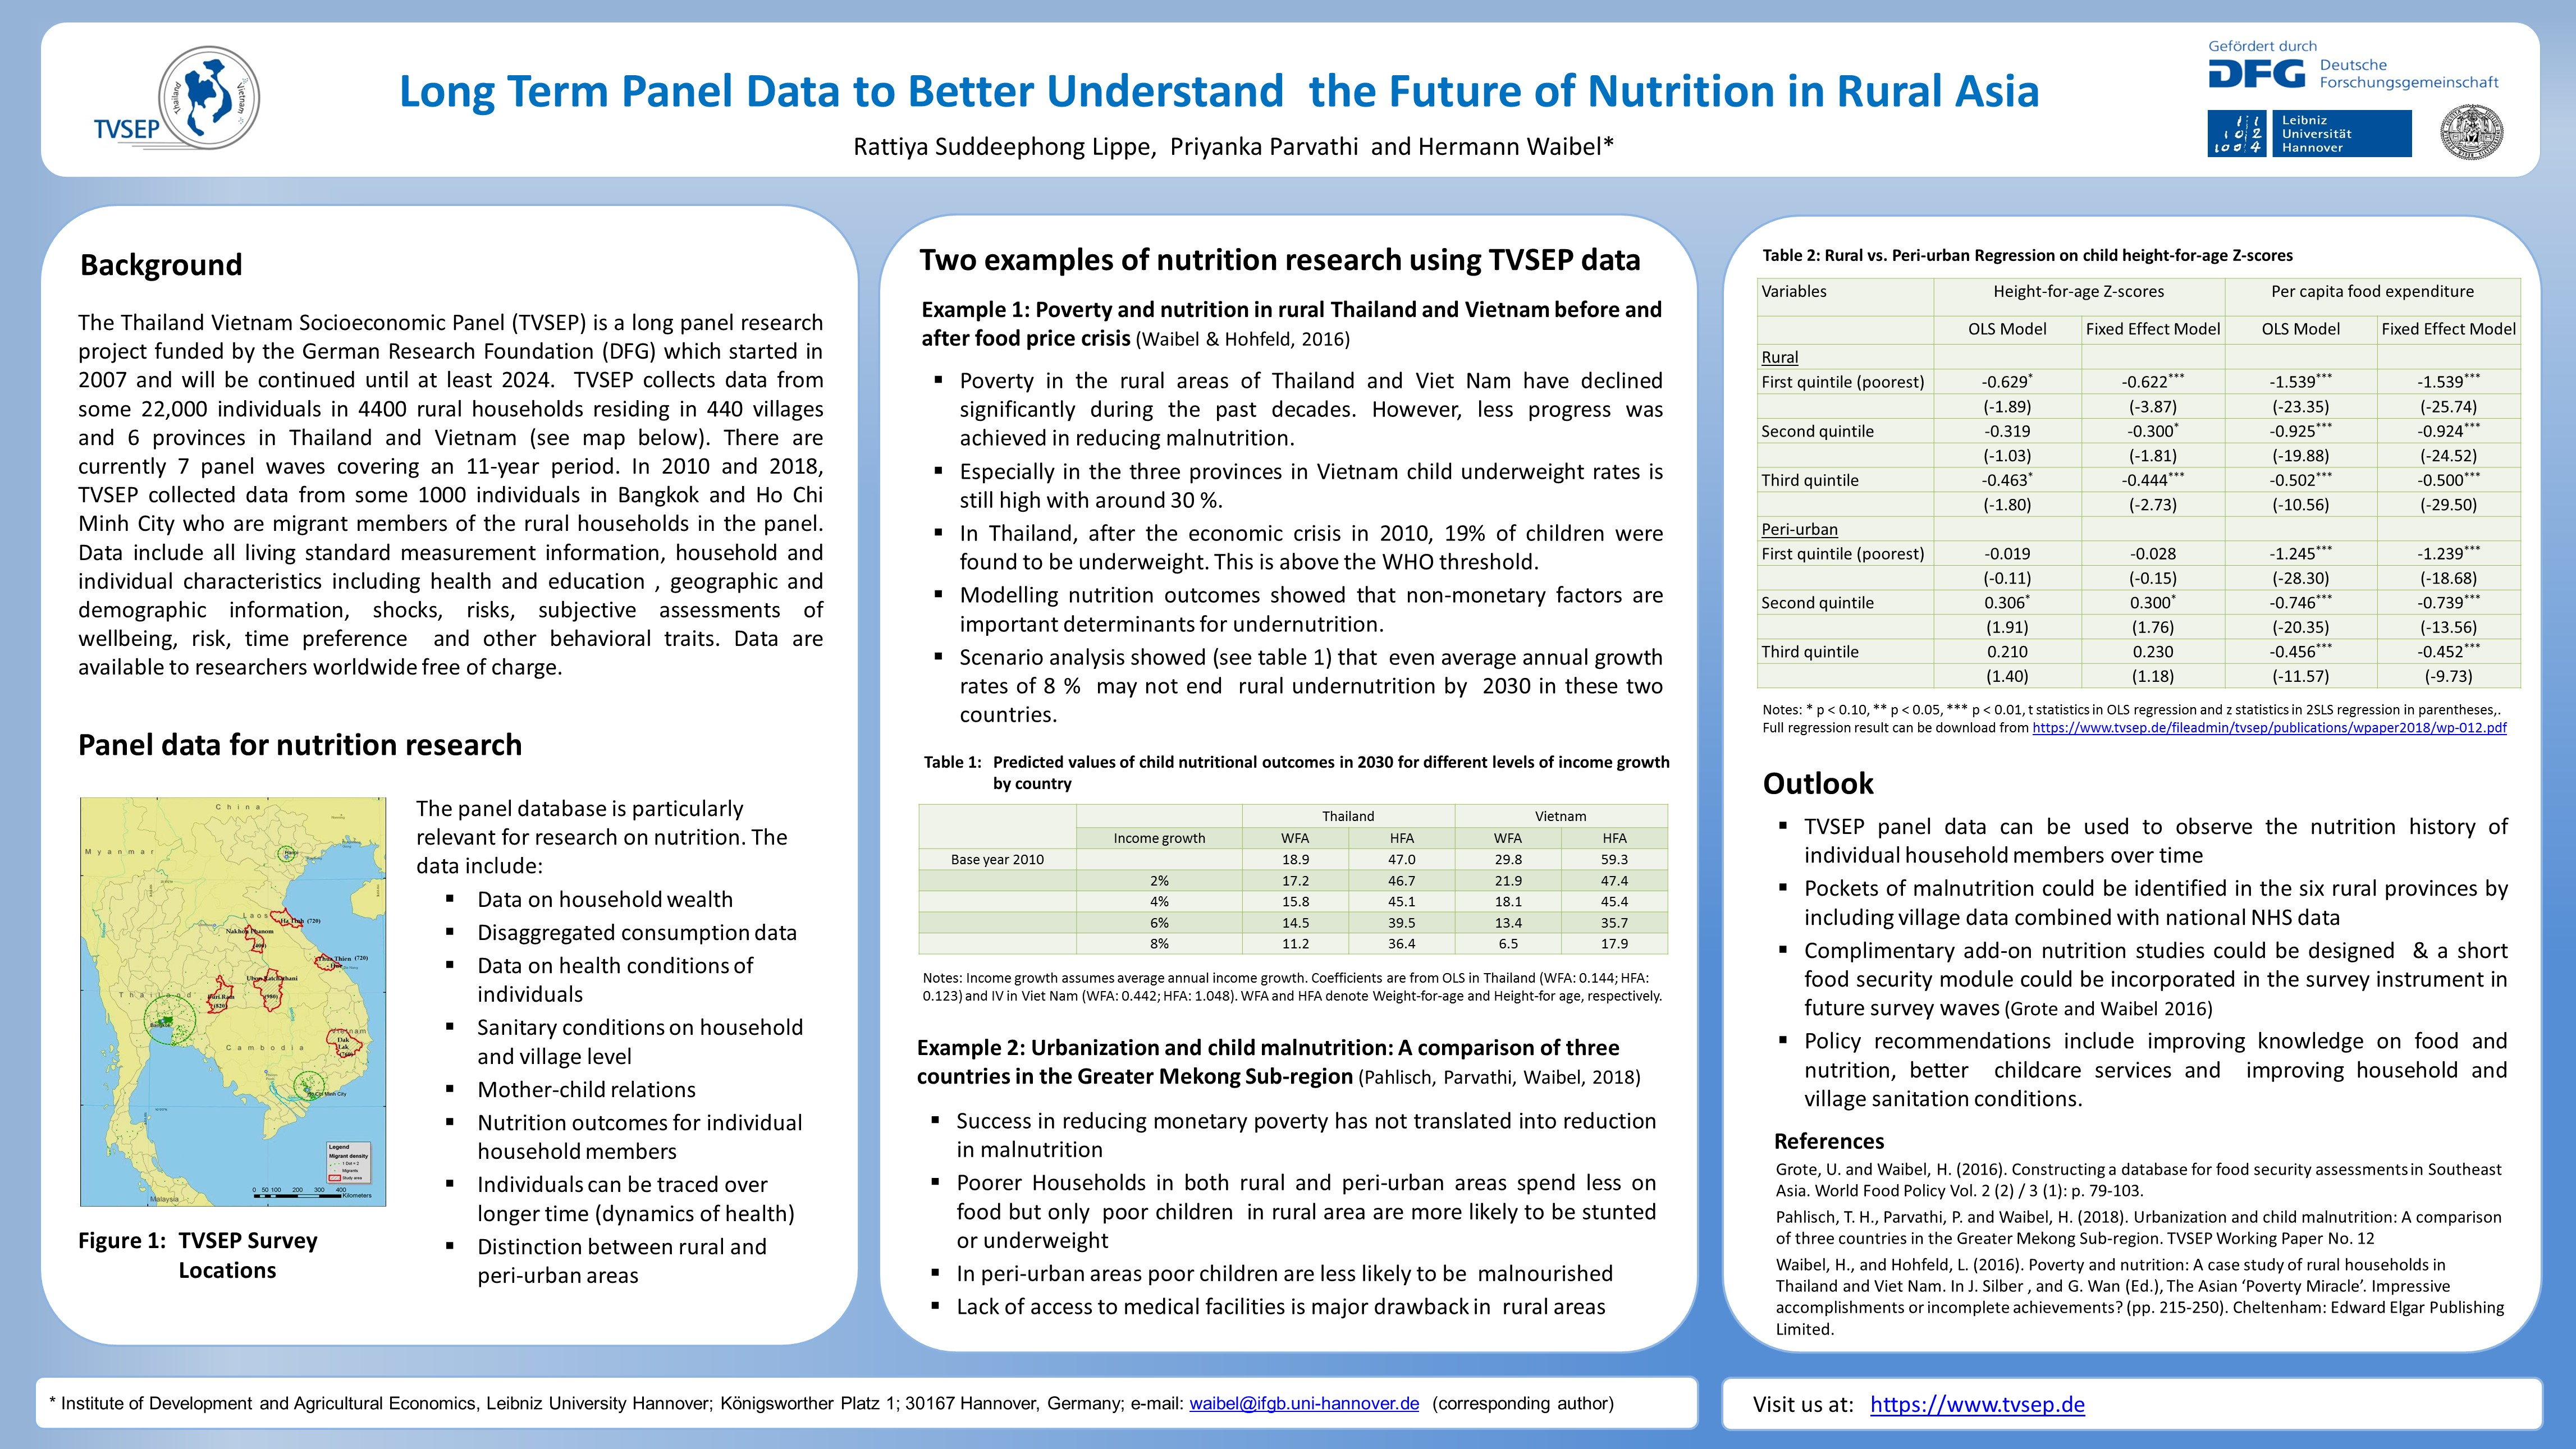 Long Term Panel Data to Better Understand the Future of Nutrition in Rural Asia